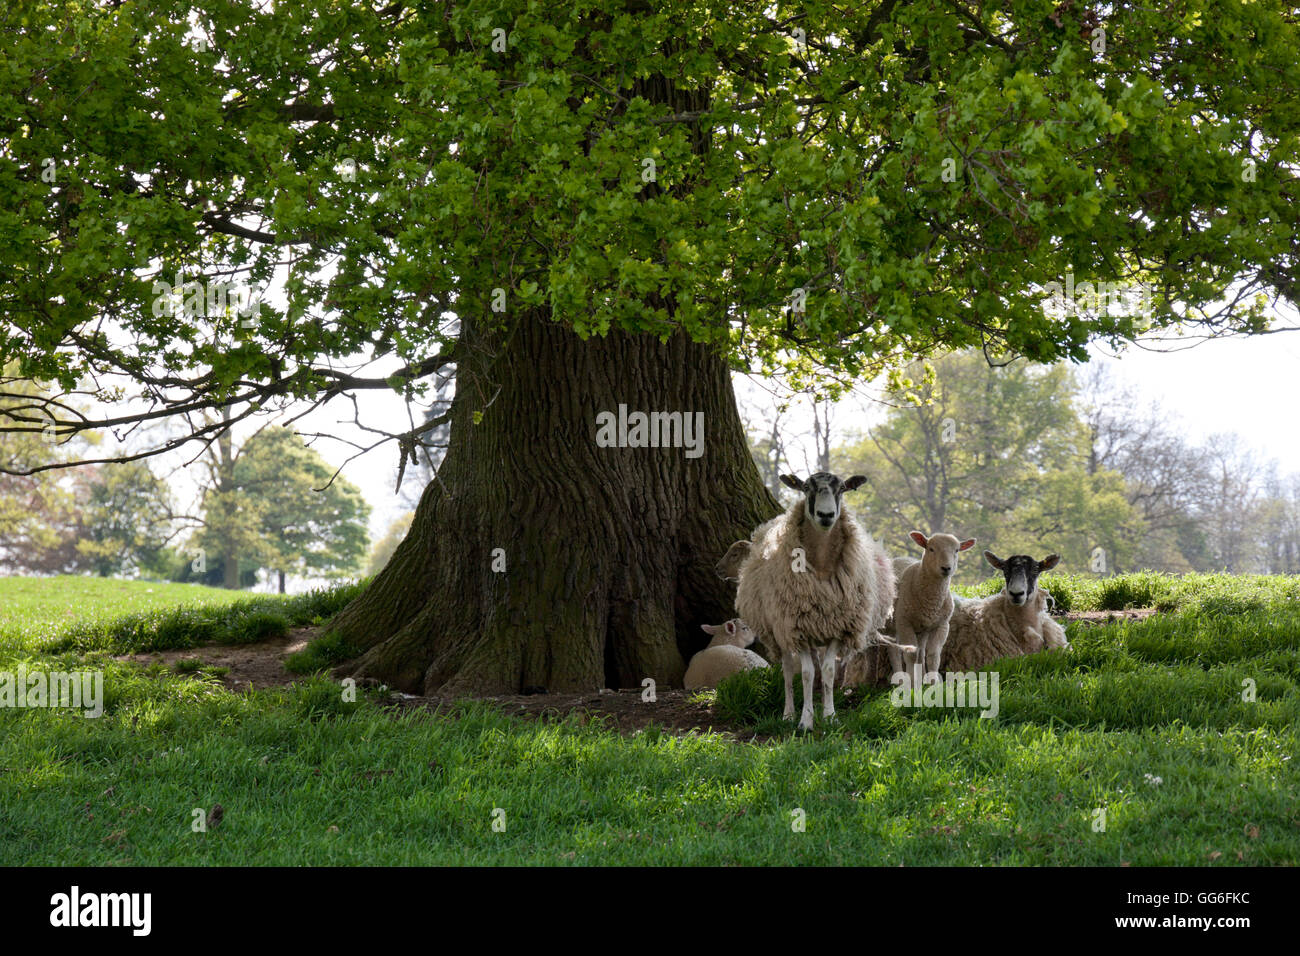 Ewes and lambs under shade of oak tree, Chipping Campden, Cotswolds, Gloucestershire, England, United Kingdom, Europe - Stock Image